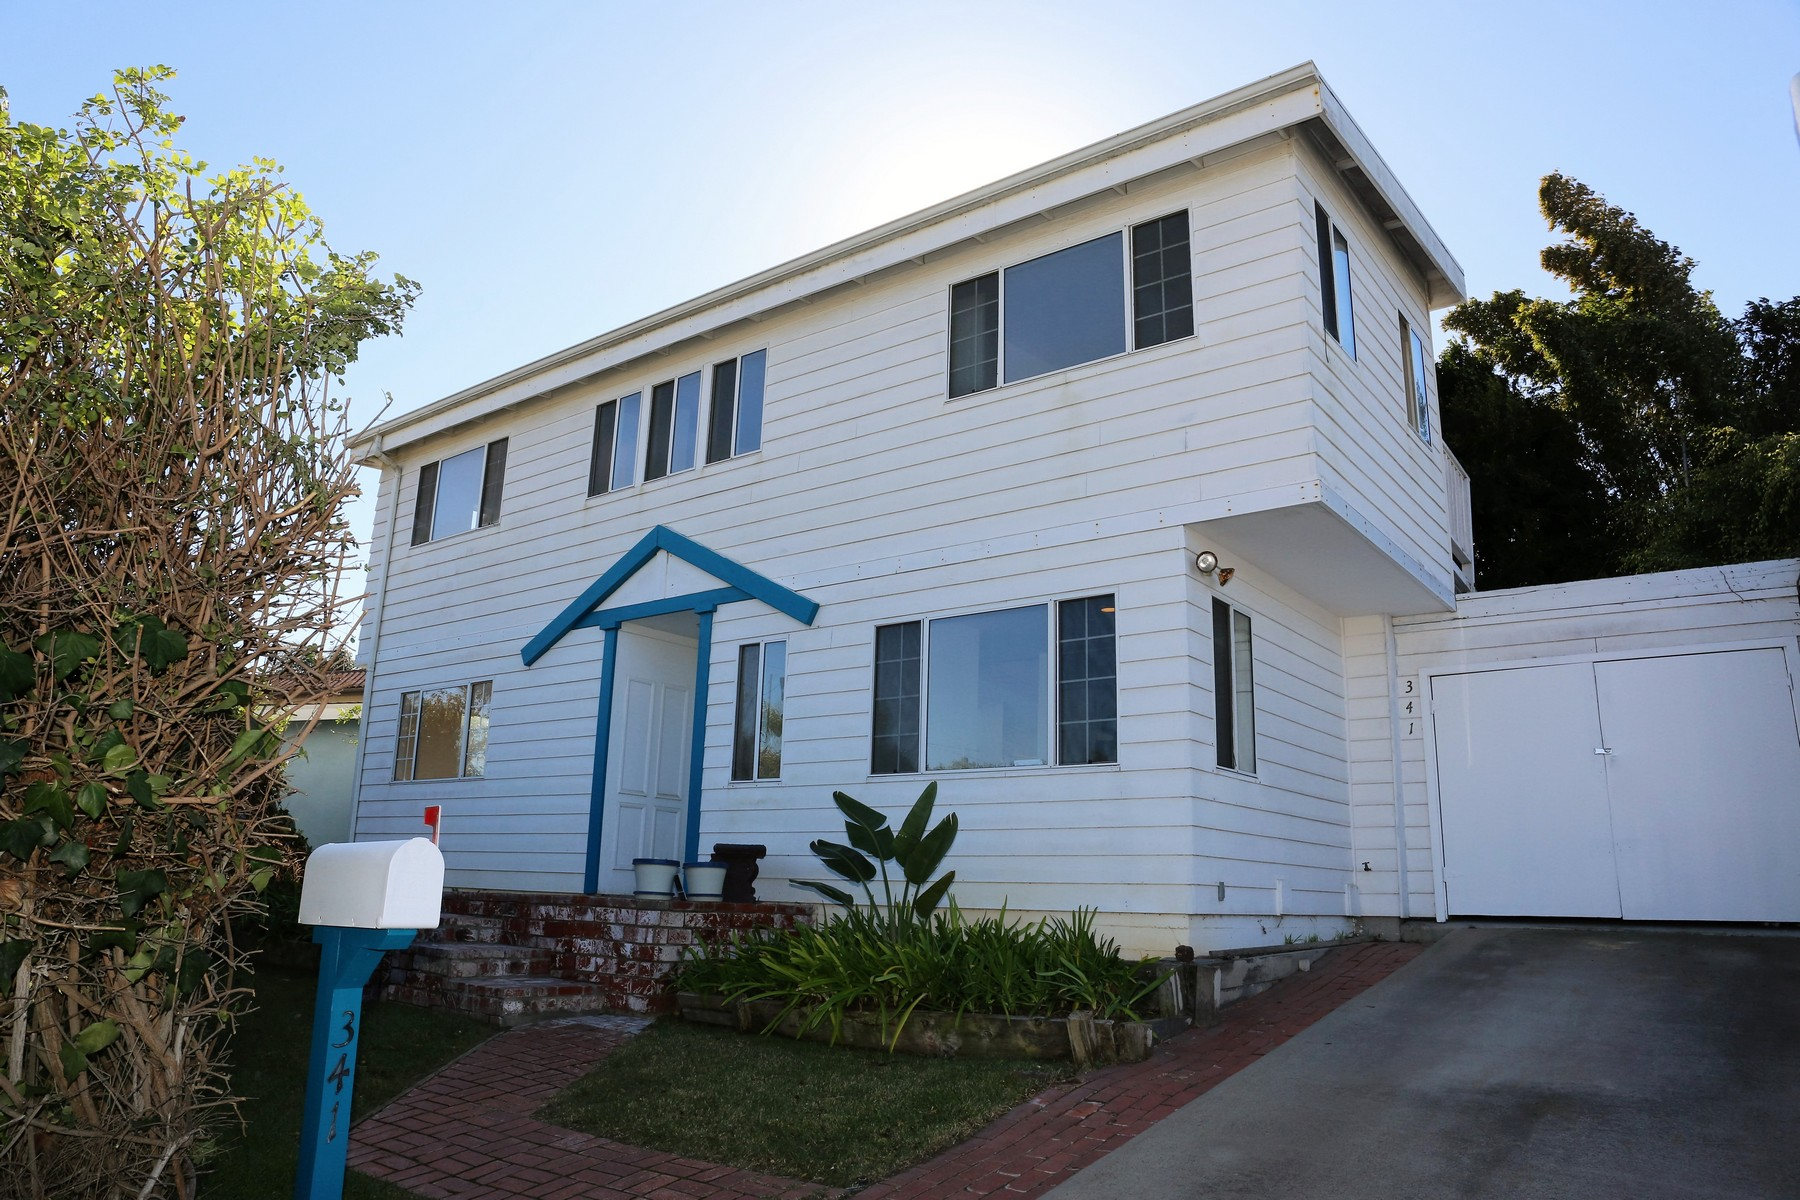 Single Family Home for Sale at 341 North Sierra Avenue Solana Beach, California 92075 United States